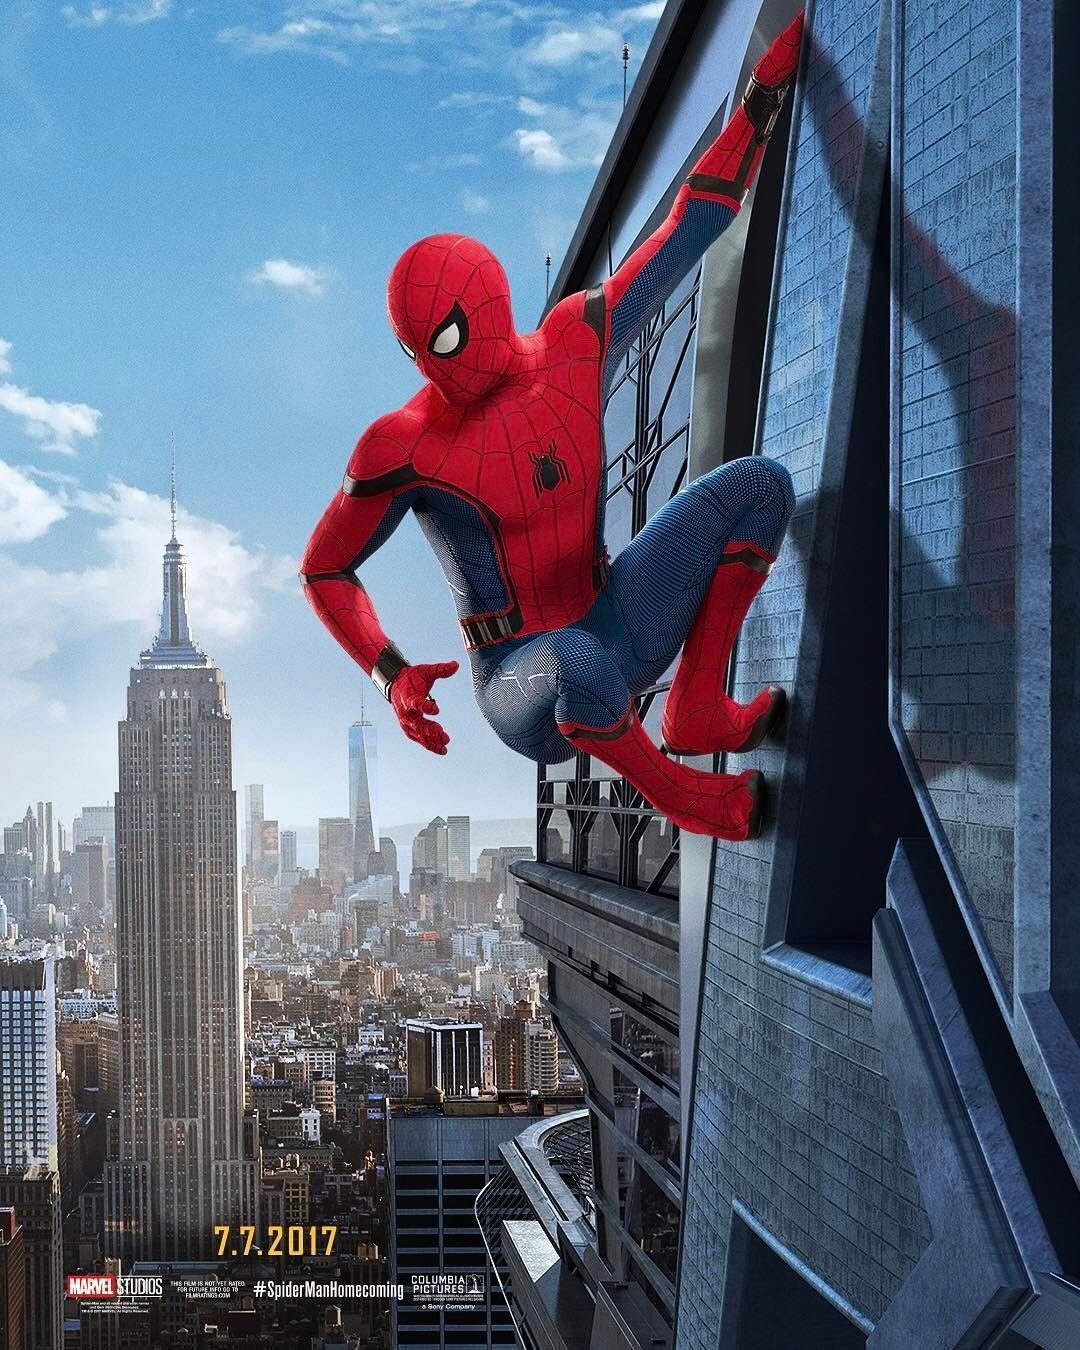 Spiderman Homecoming 2017 Wallpapers | Movie Stills - HD Images 1080p